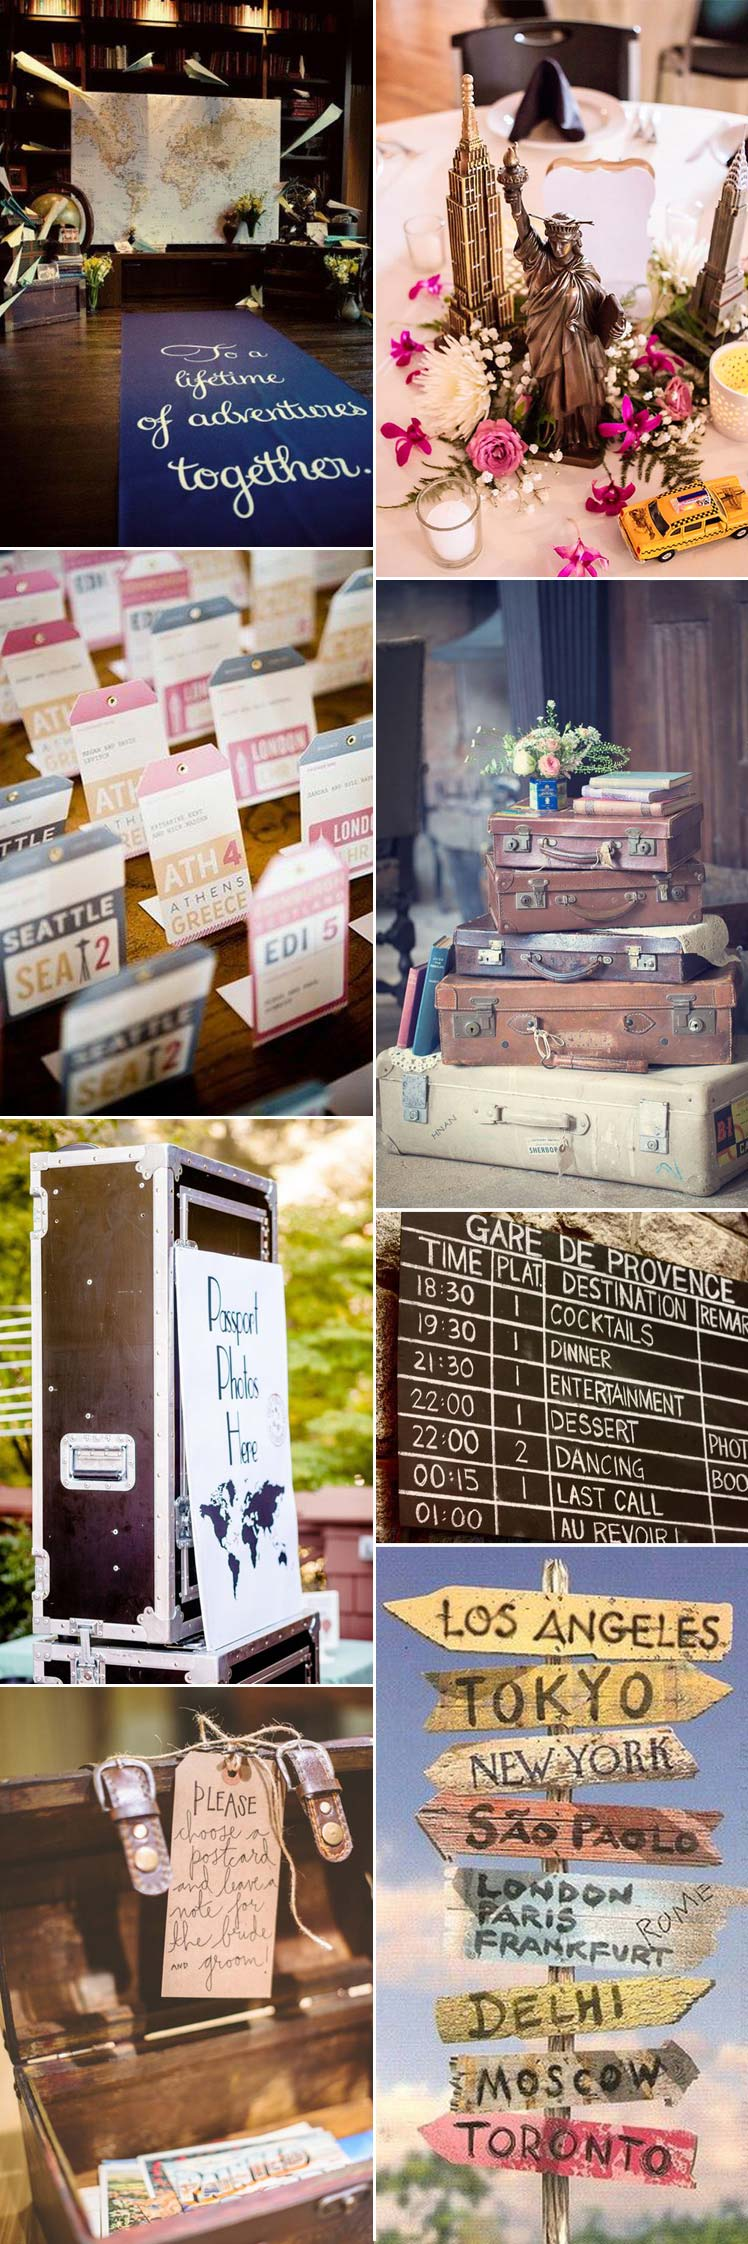 stylish travel inspired wedding ideas